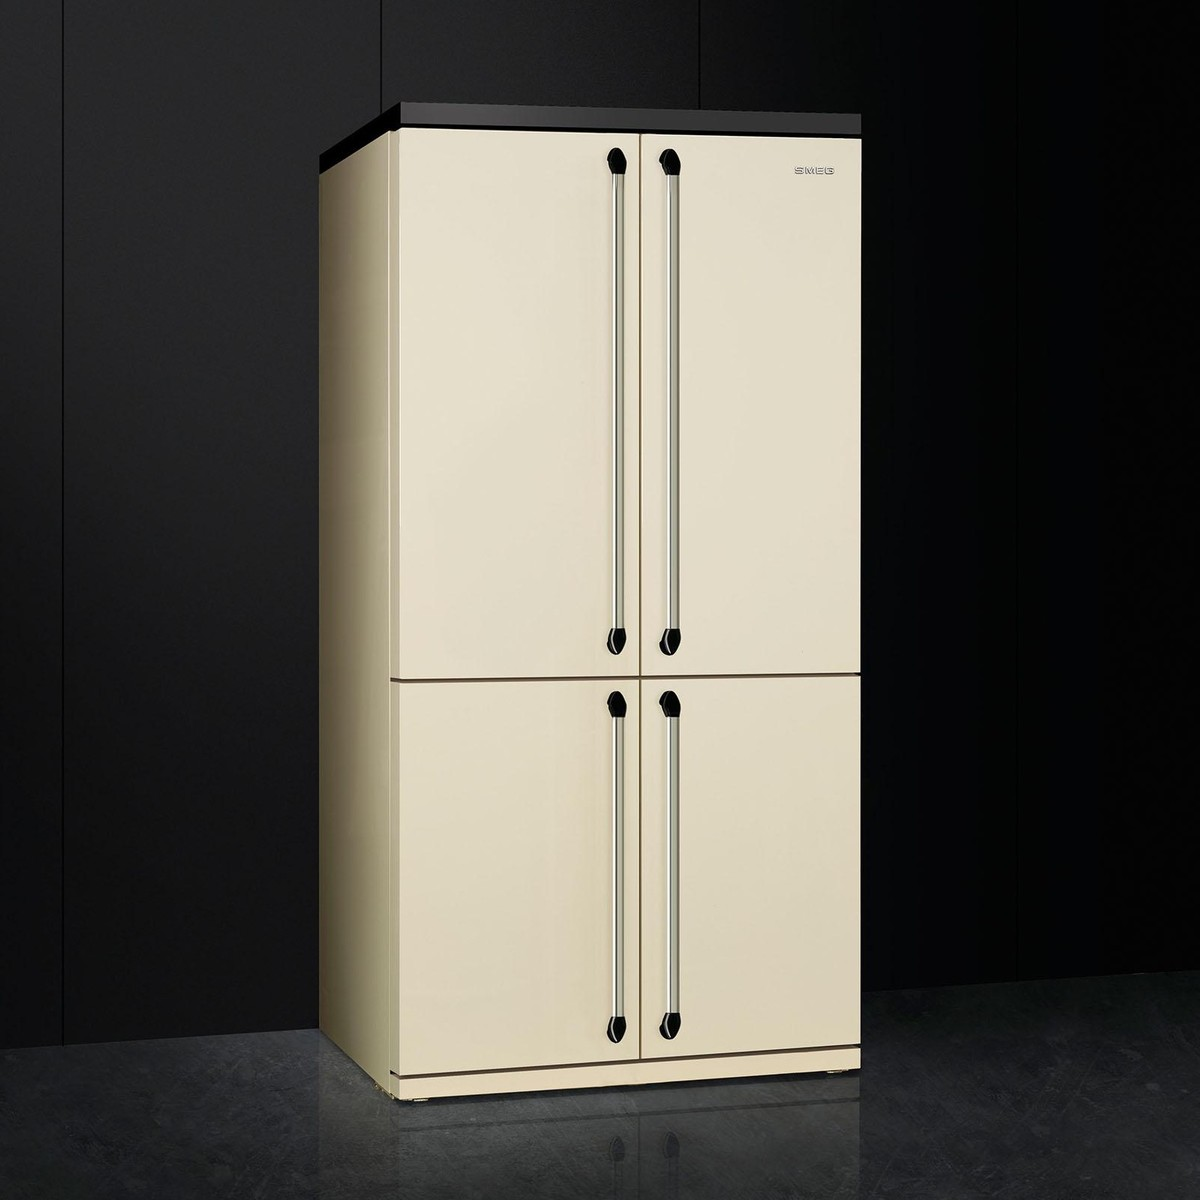 Fq960p Side By Side Refrigerator Smeg High Tech